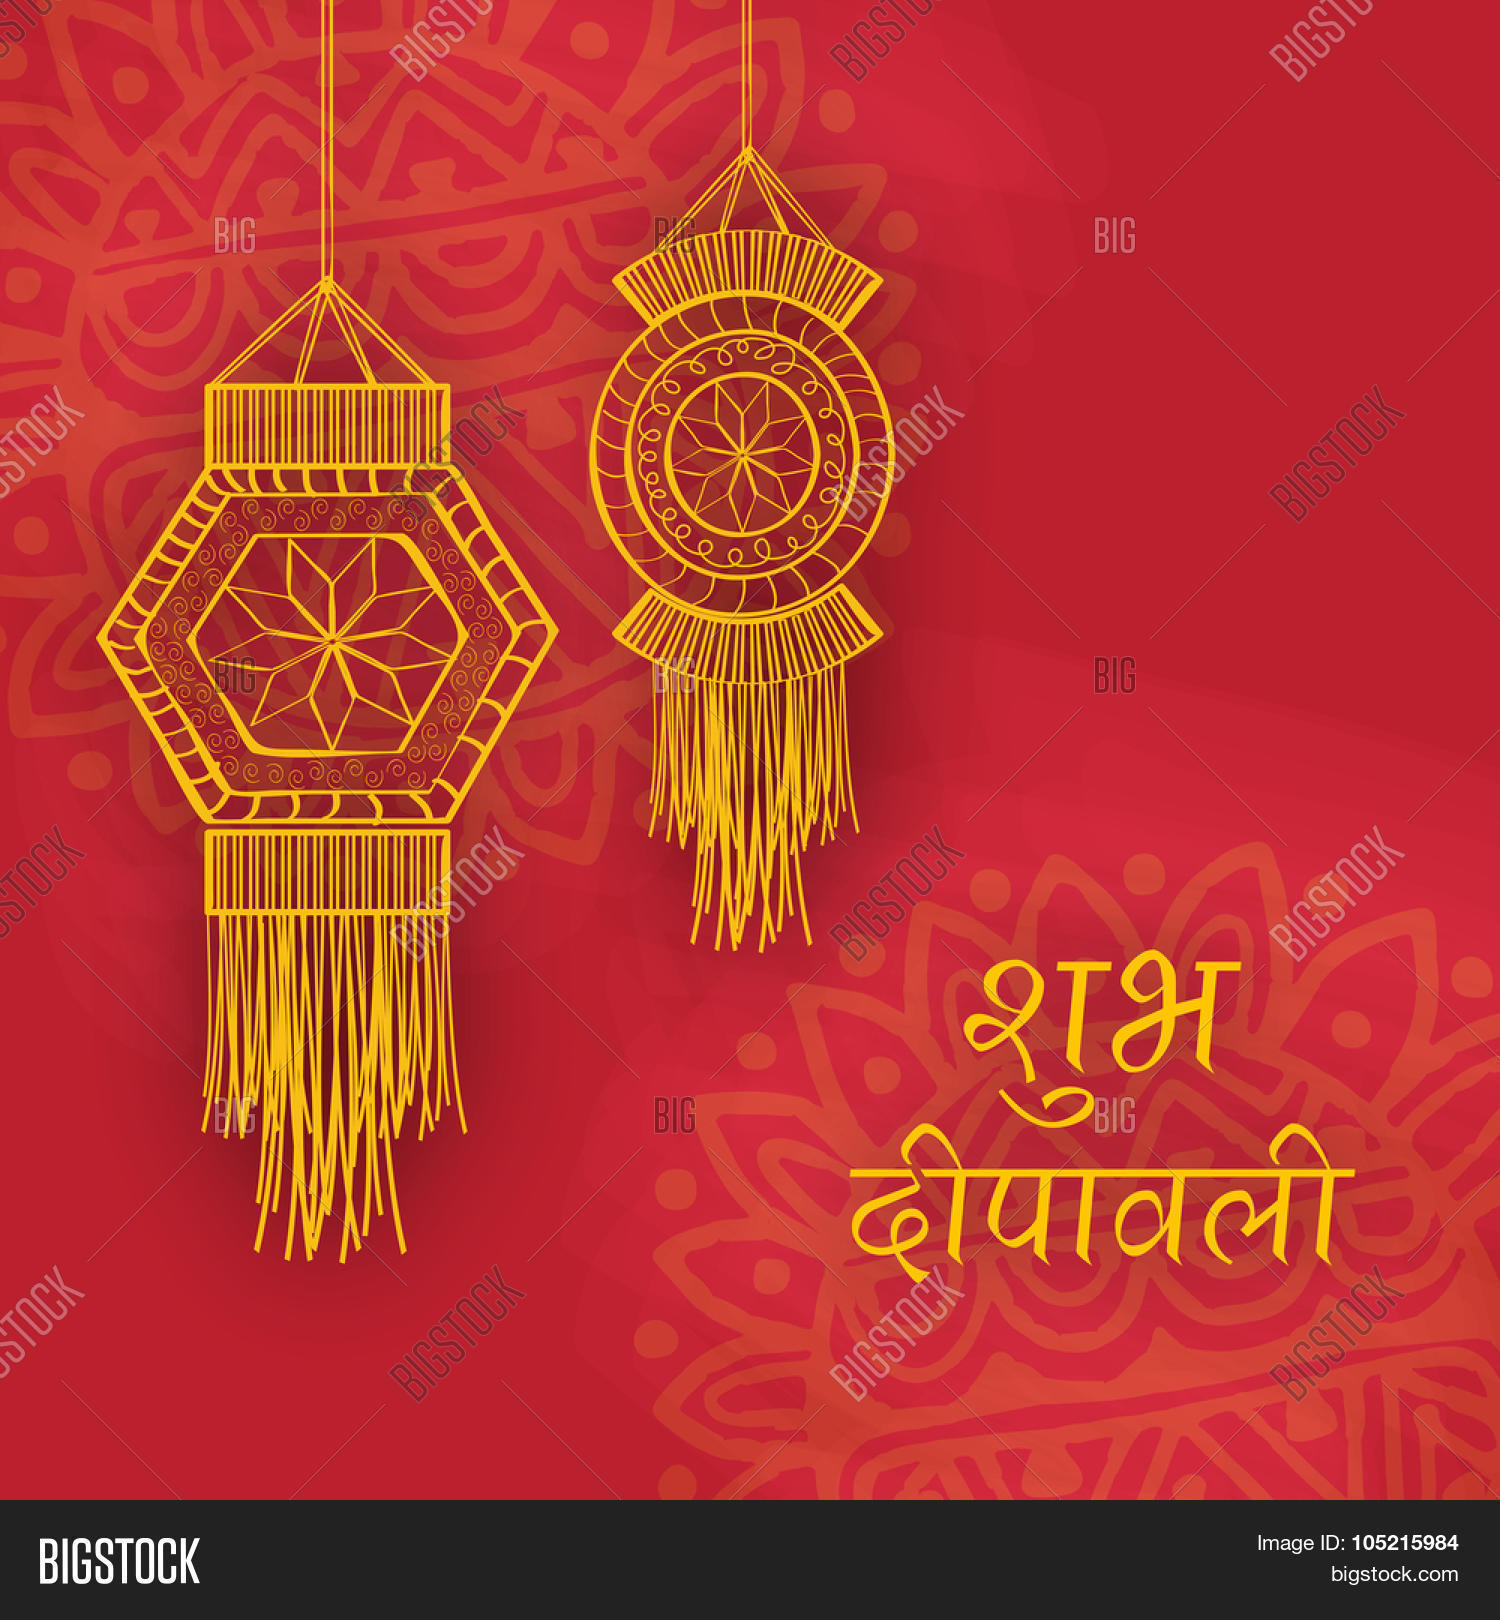 Creative Hanging Lamps On Floral Decorated Background With Hindi Text Shubh Deepawali Happy Diwali